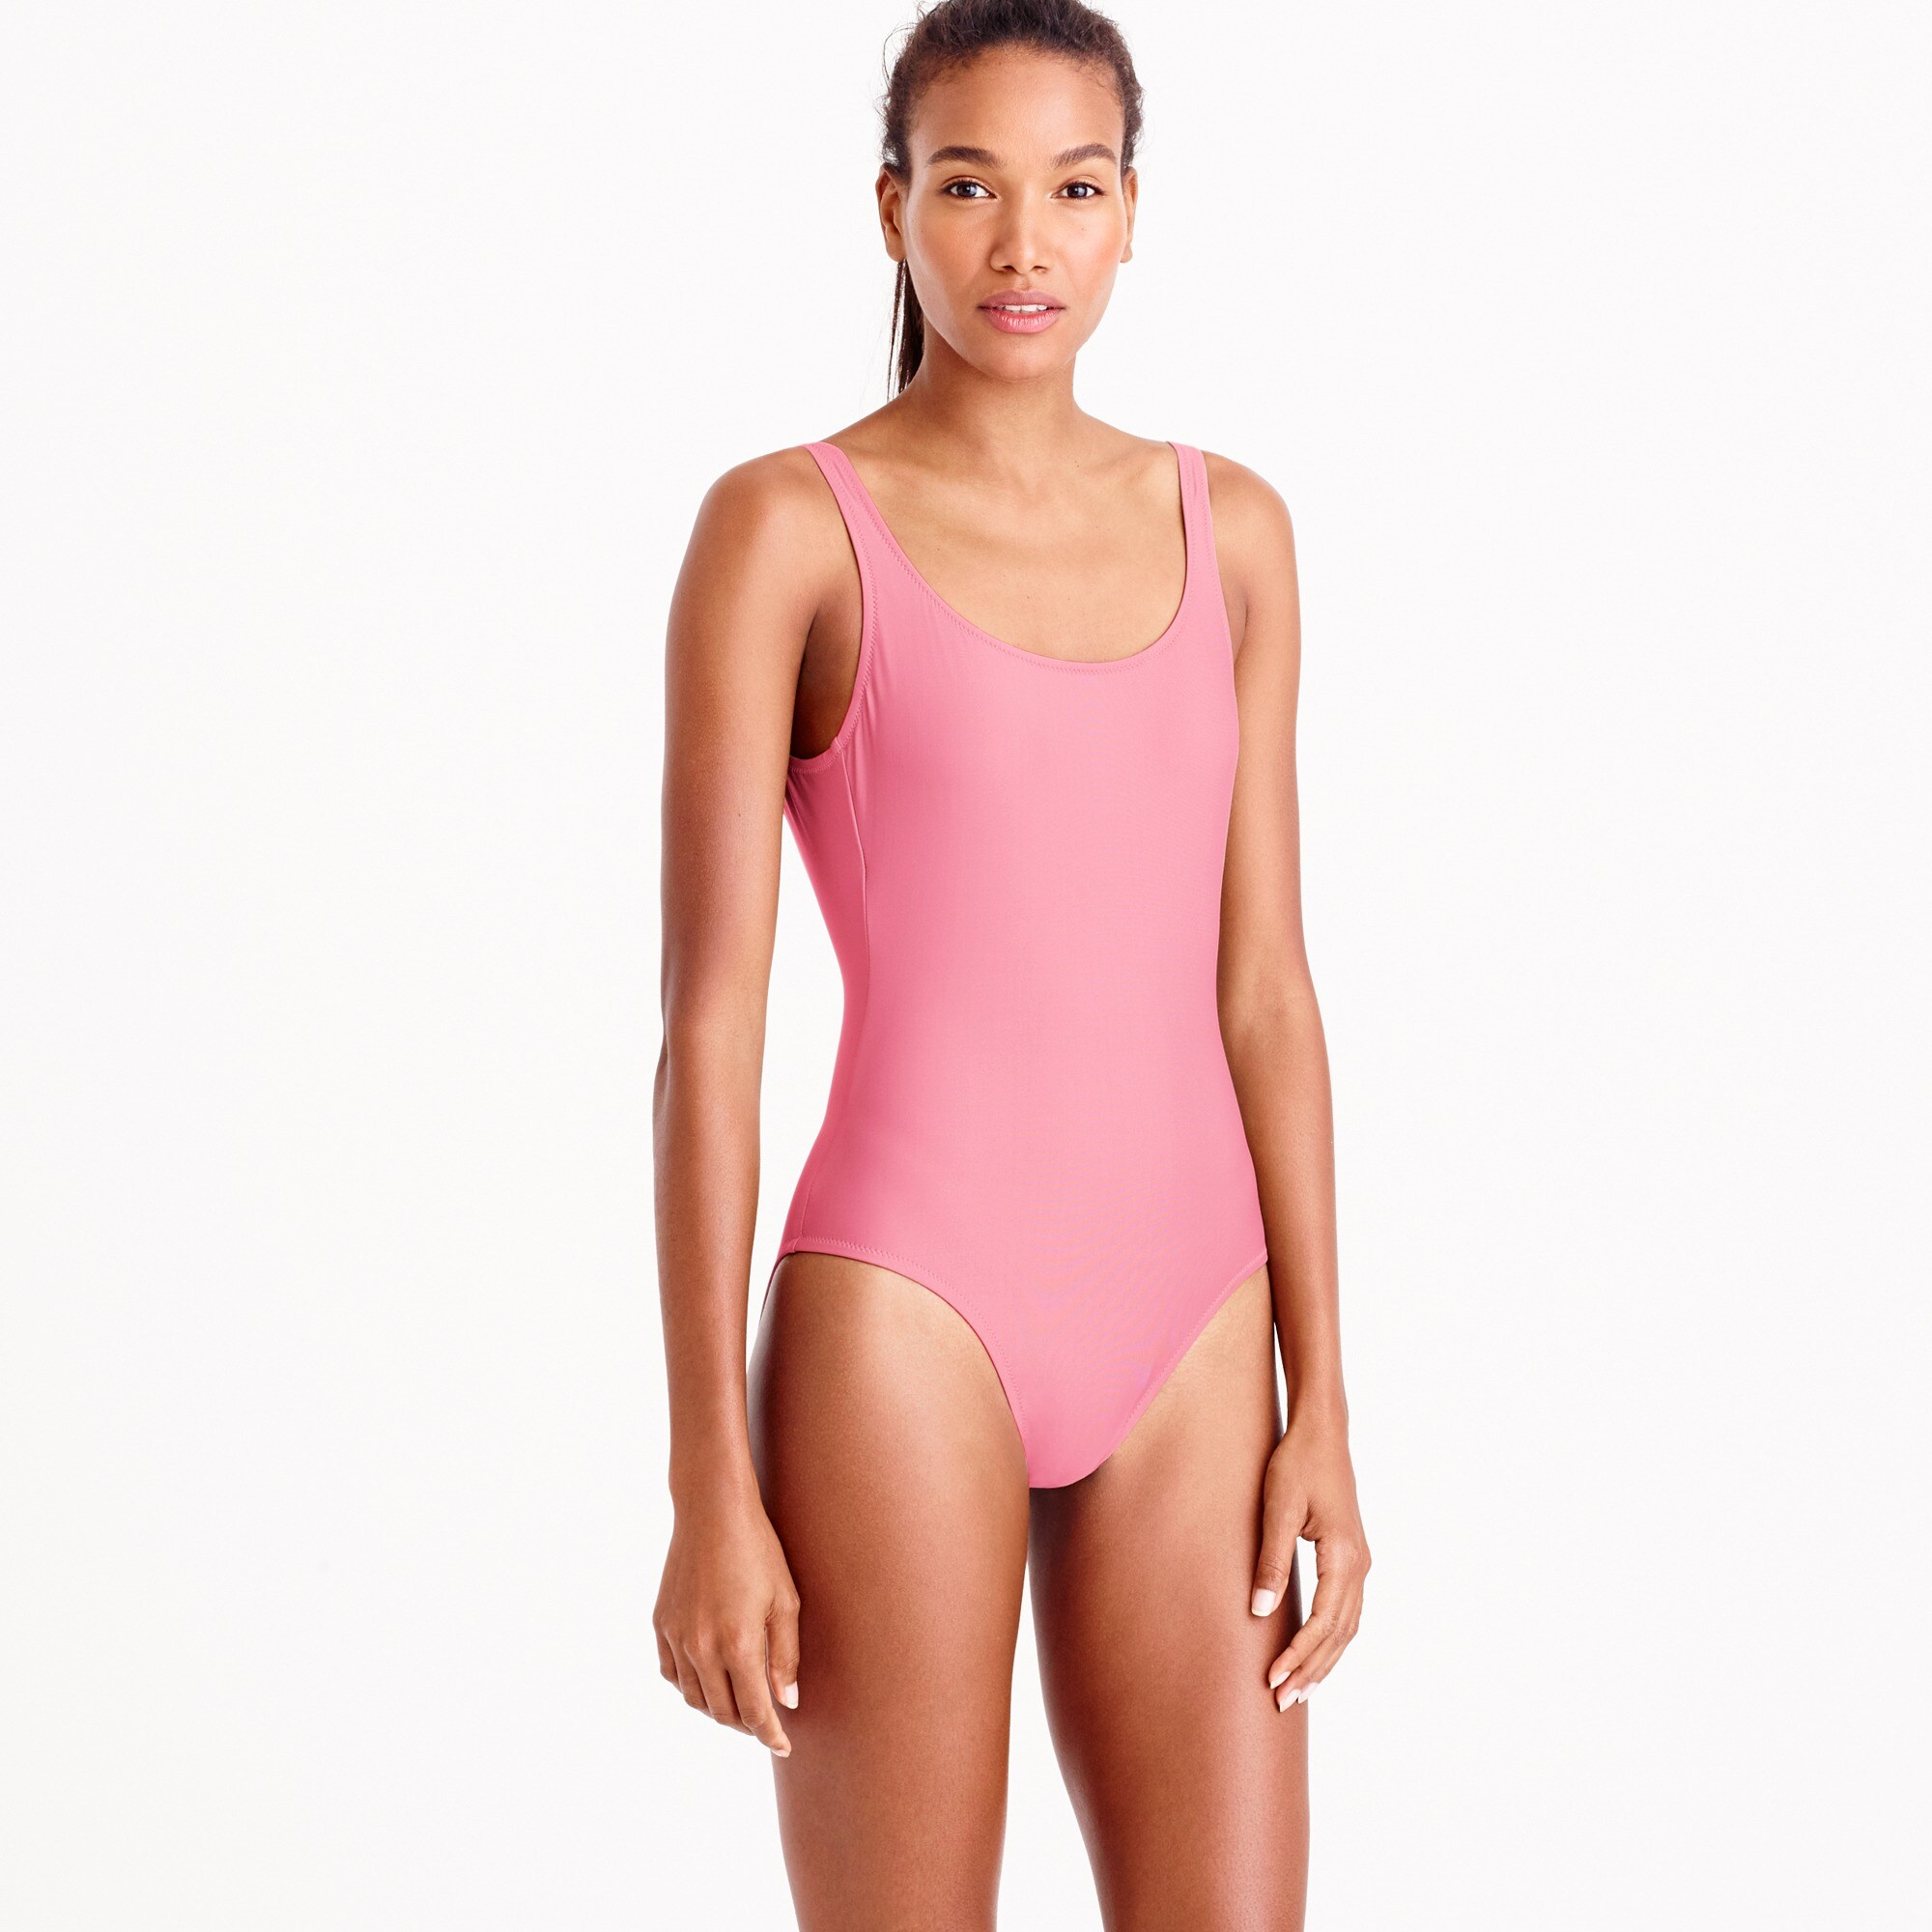 scoopback one-piece swimsuit : women's swim